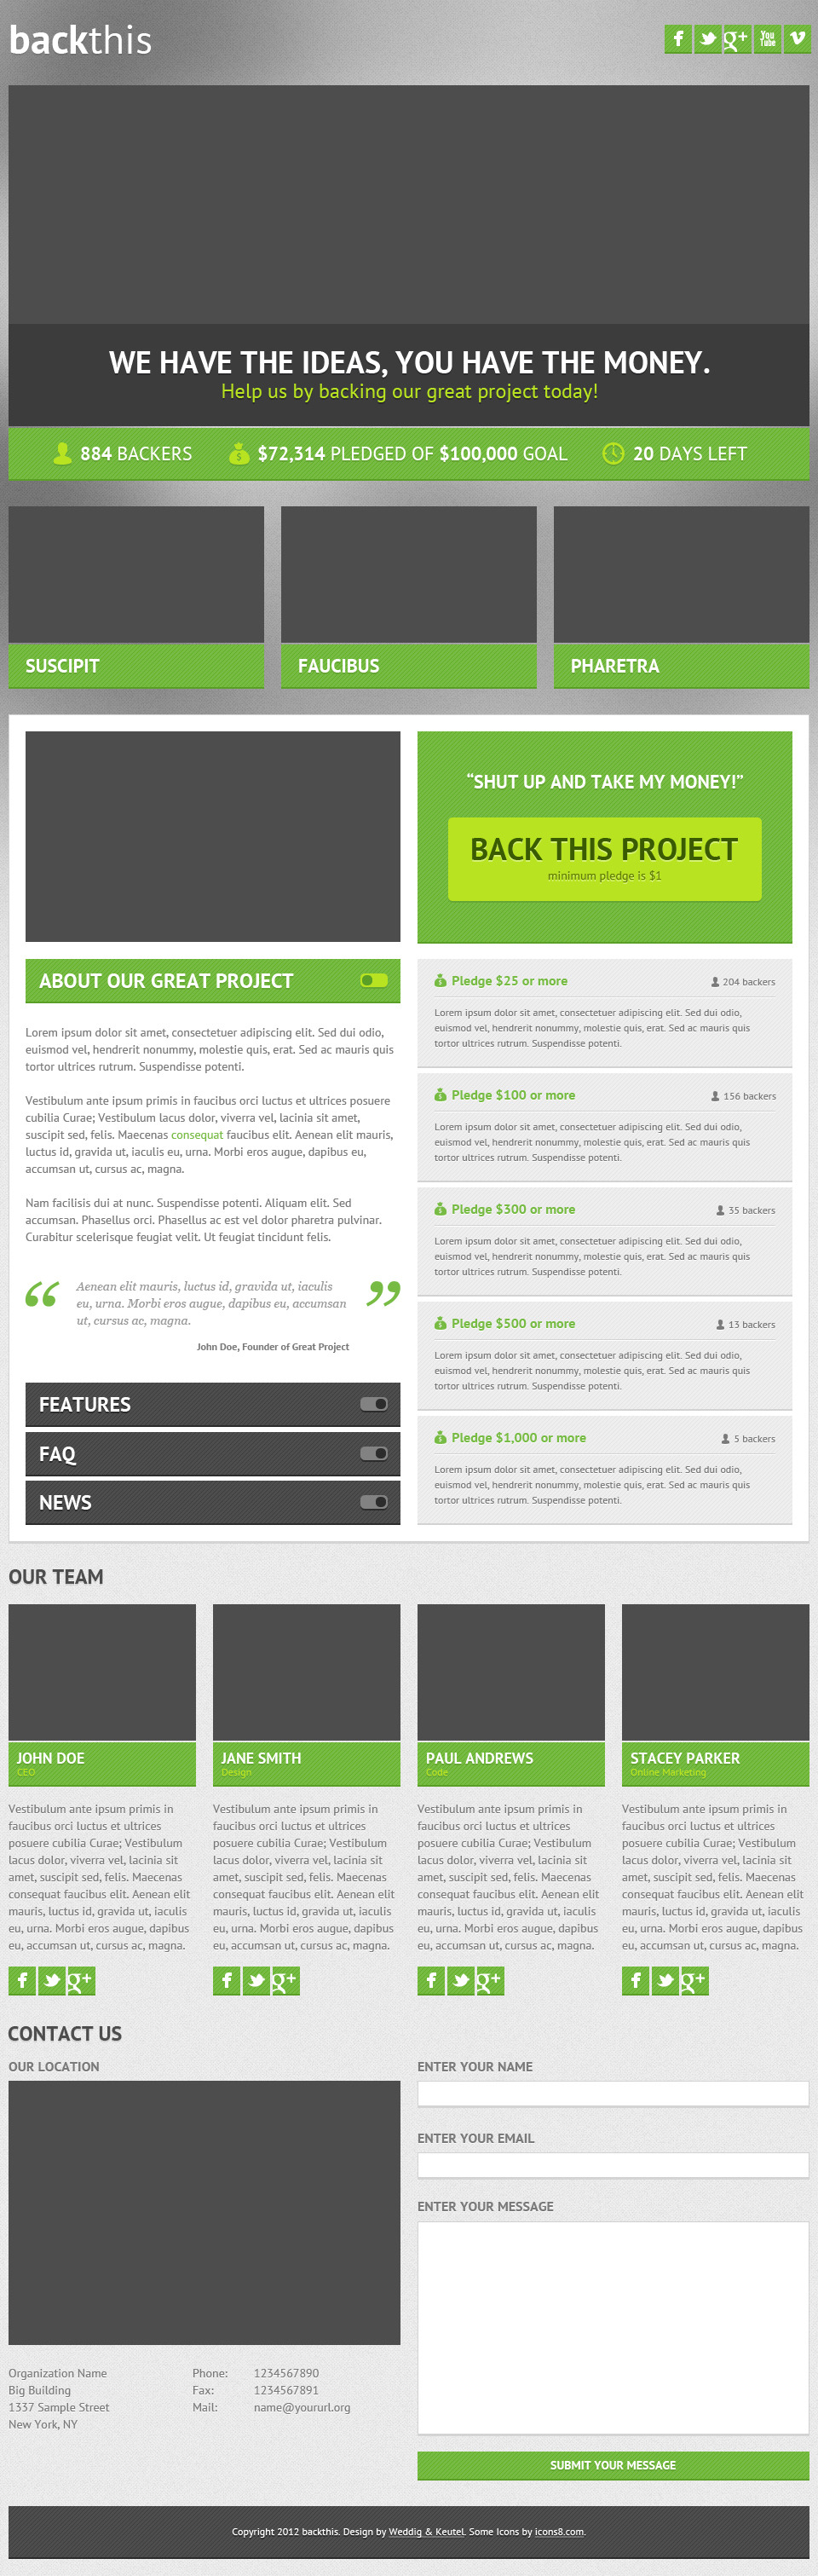 backthis - Crowdfunding Landing Page (HTML5 & PSD)